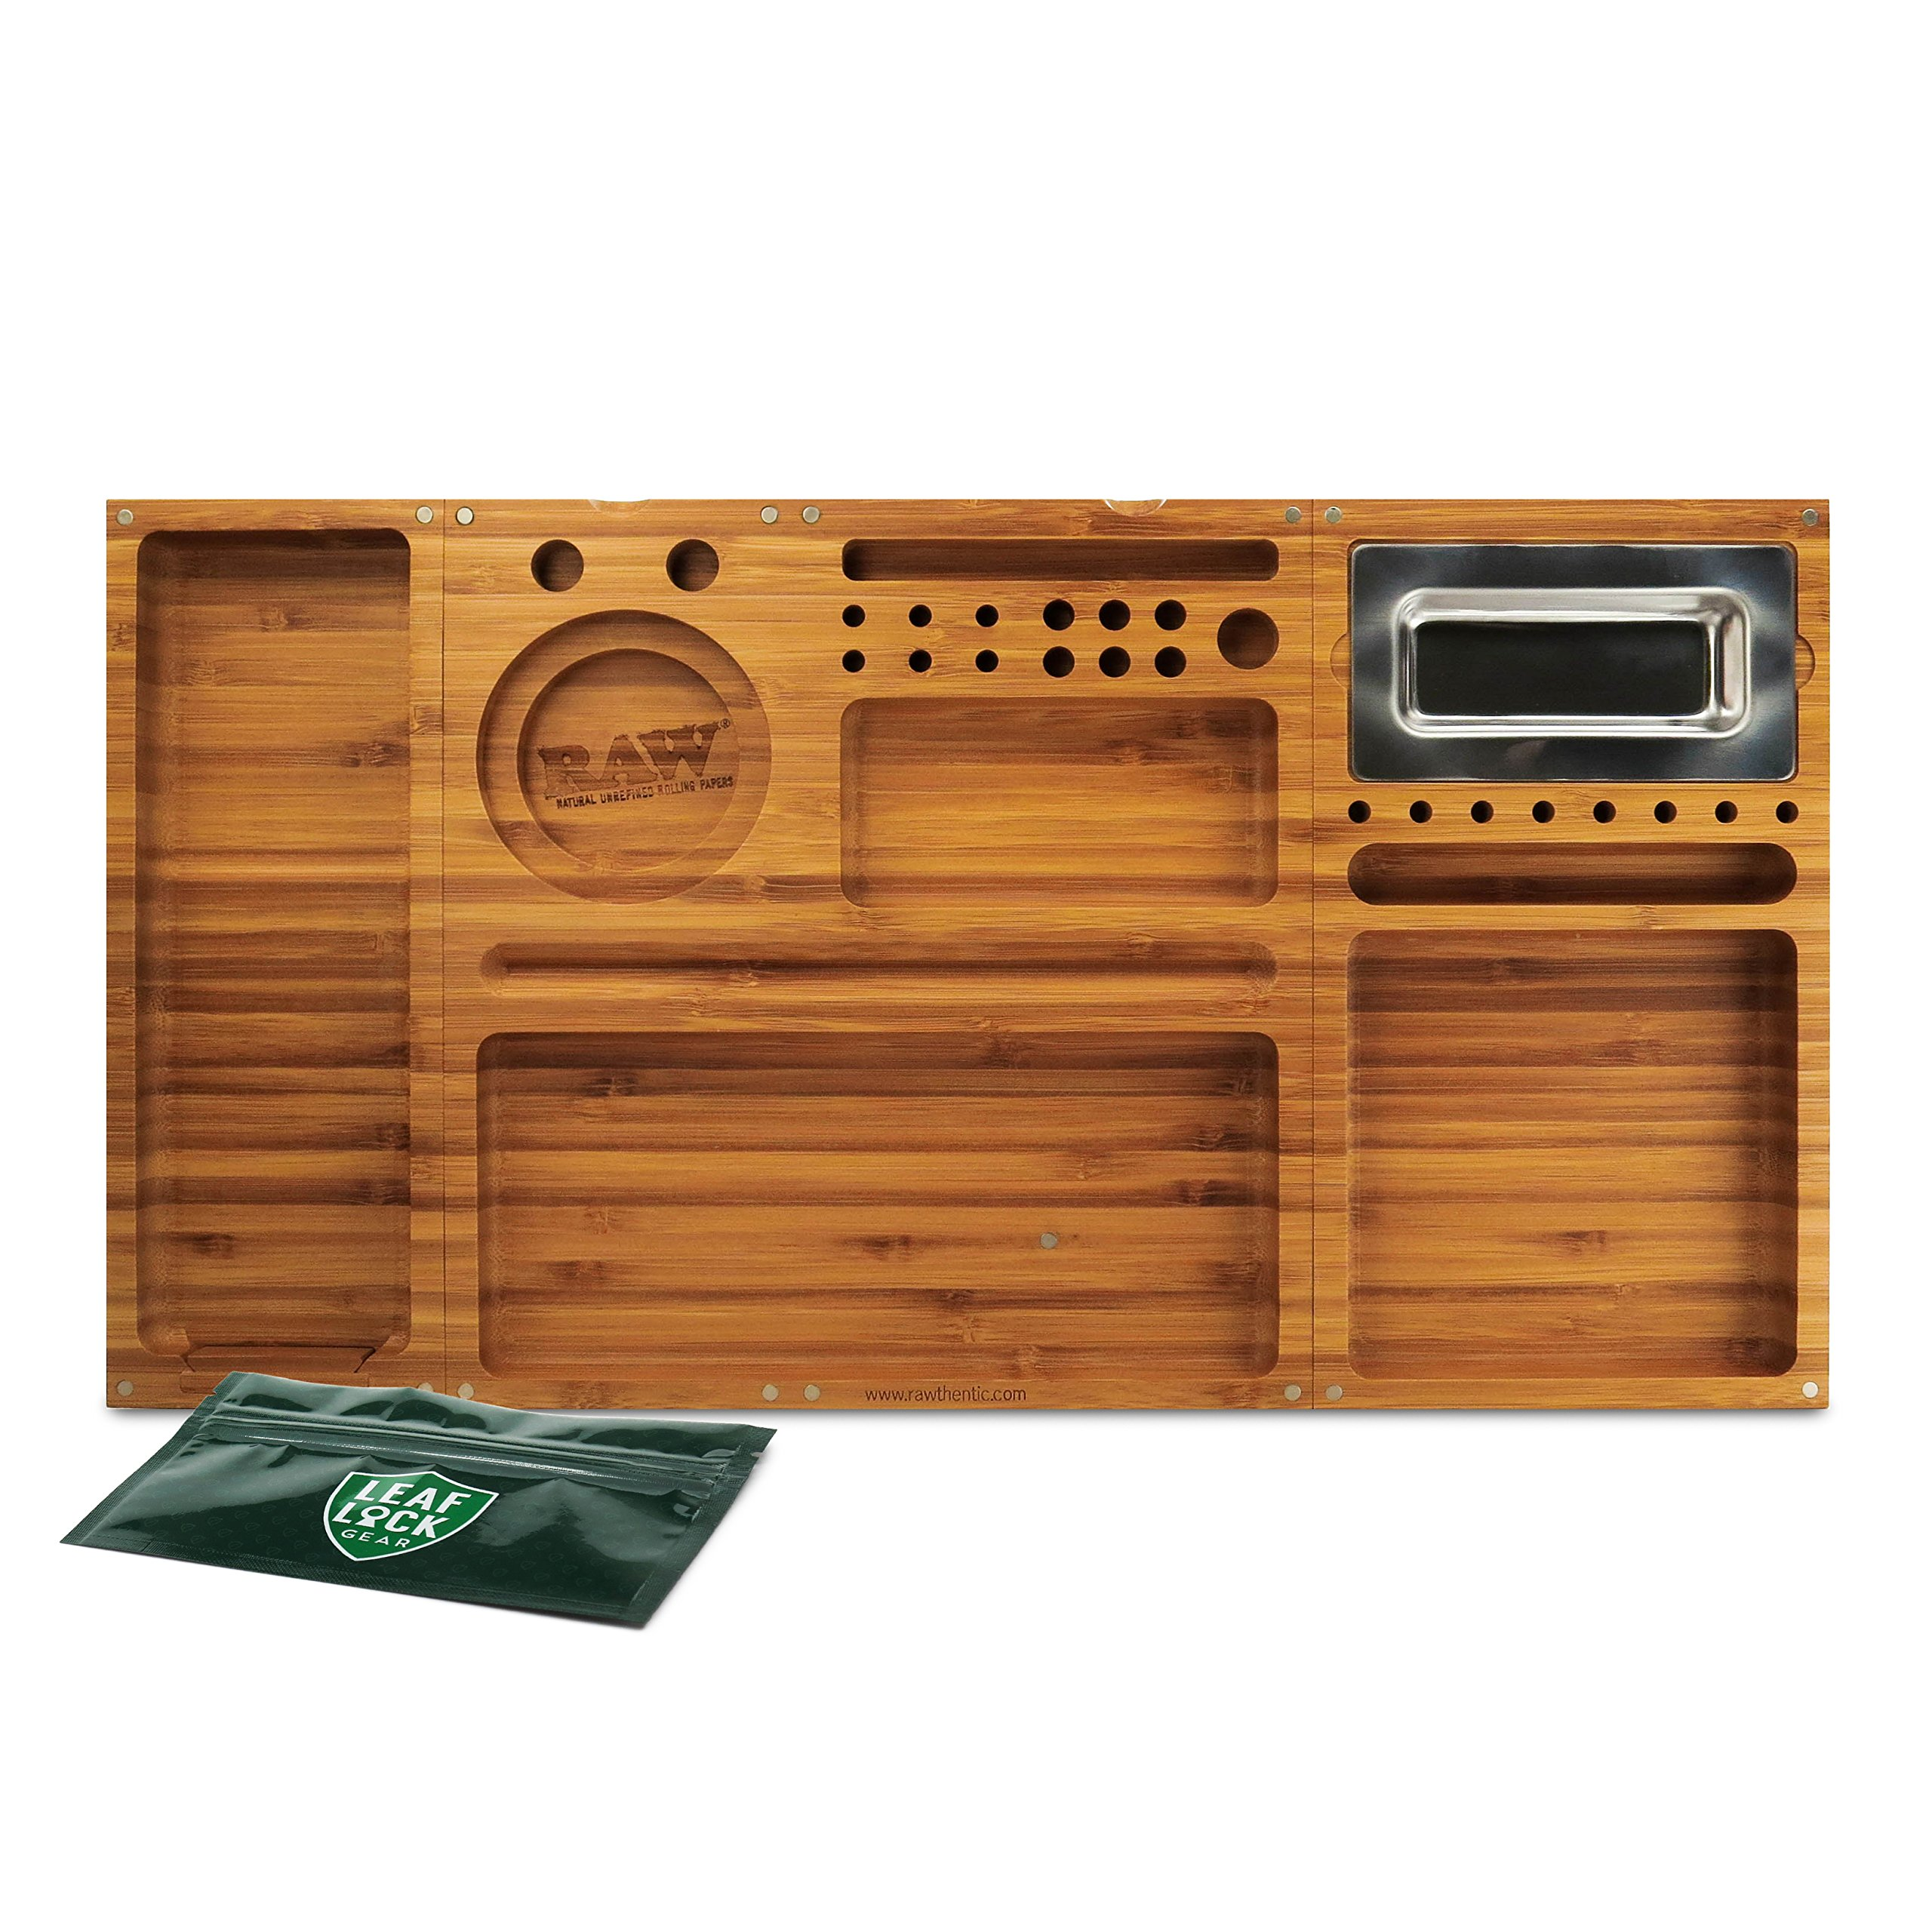 RAW Triple Flip Magnetic Bamboo Rolling Tray with Leaf Lock Gear Smell Proof Tobacco Pouch